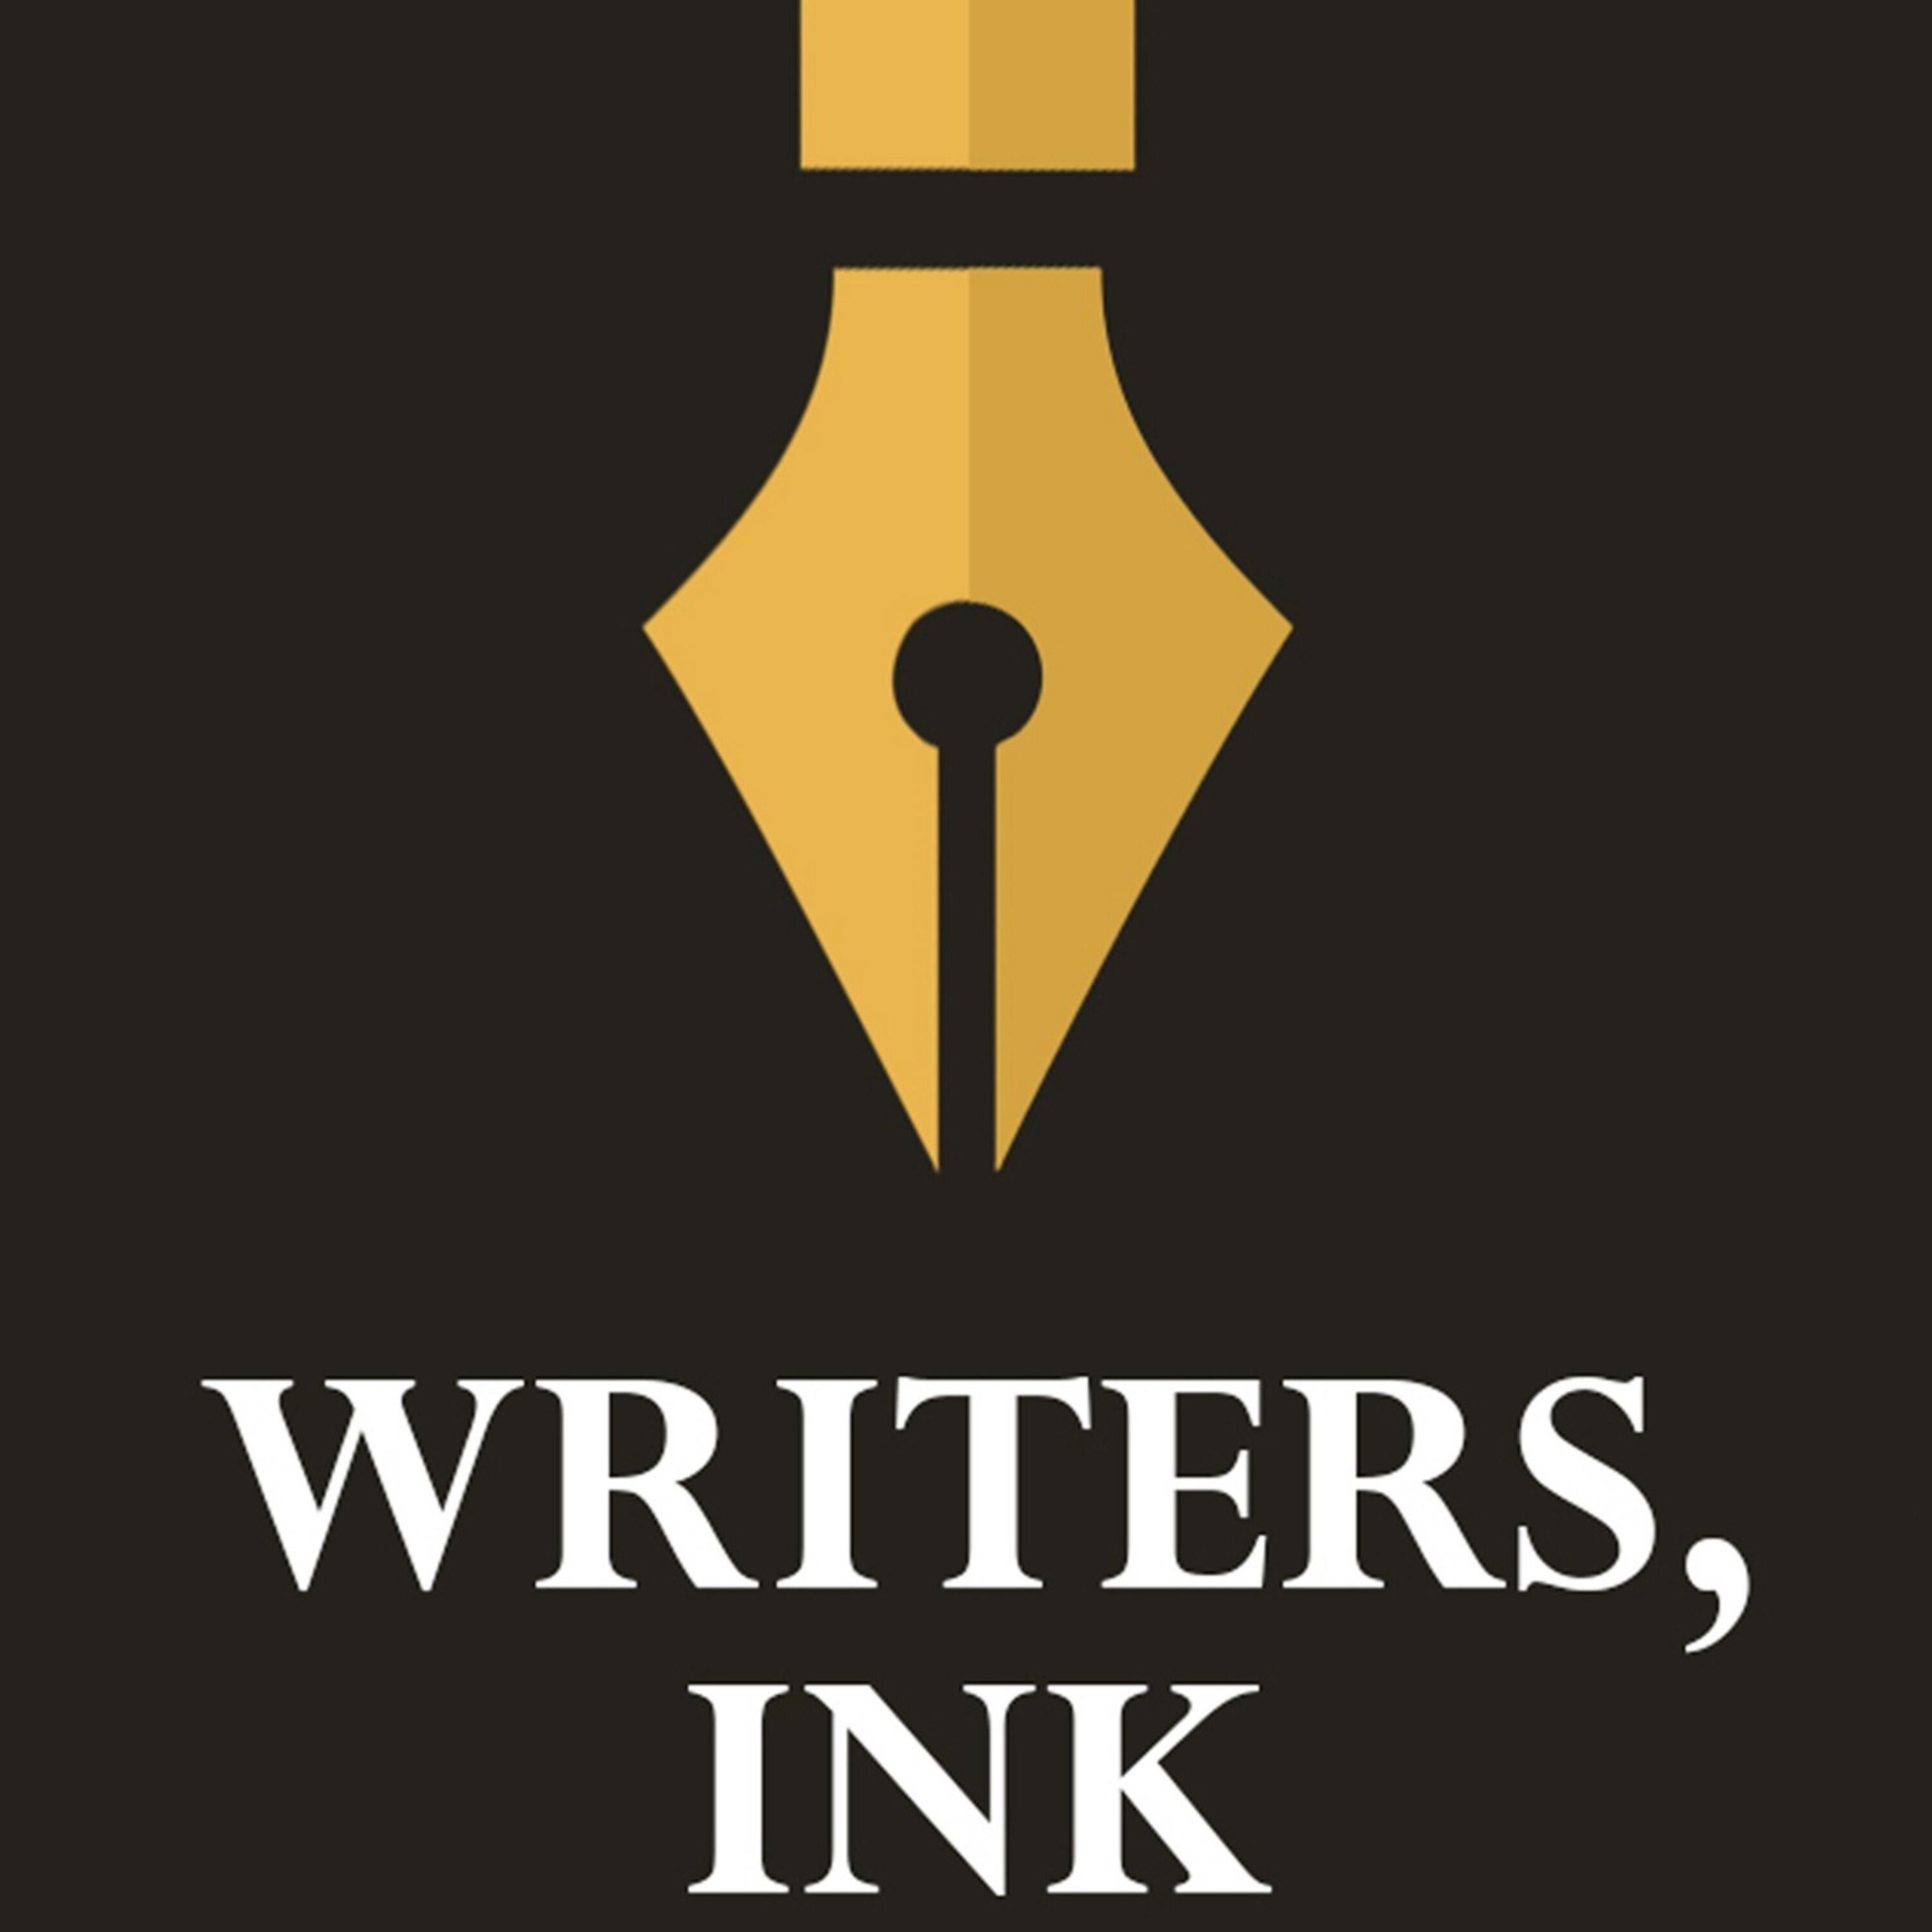 Writers, Ink